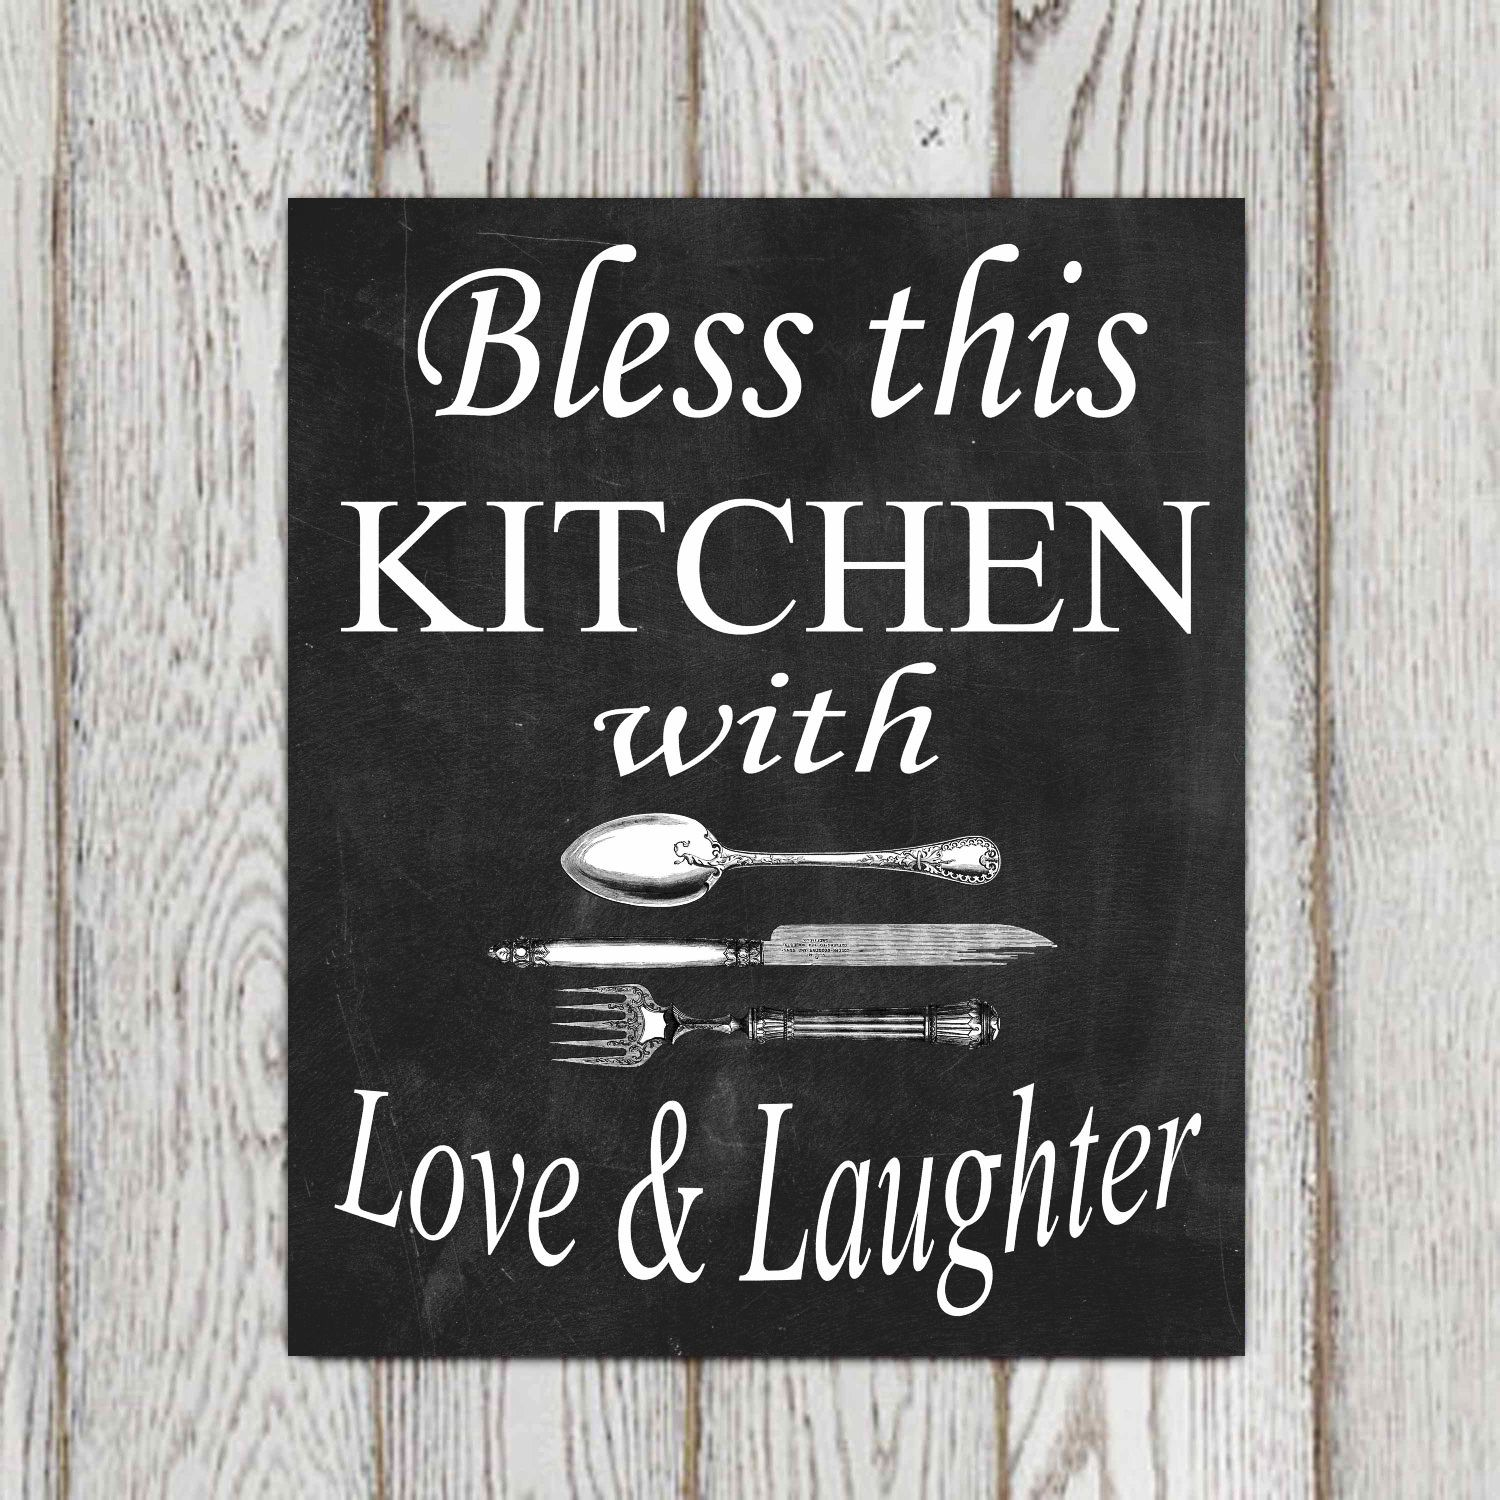 Quotes About Kitchens: Bless This Kitchen With Love & Laughter :)